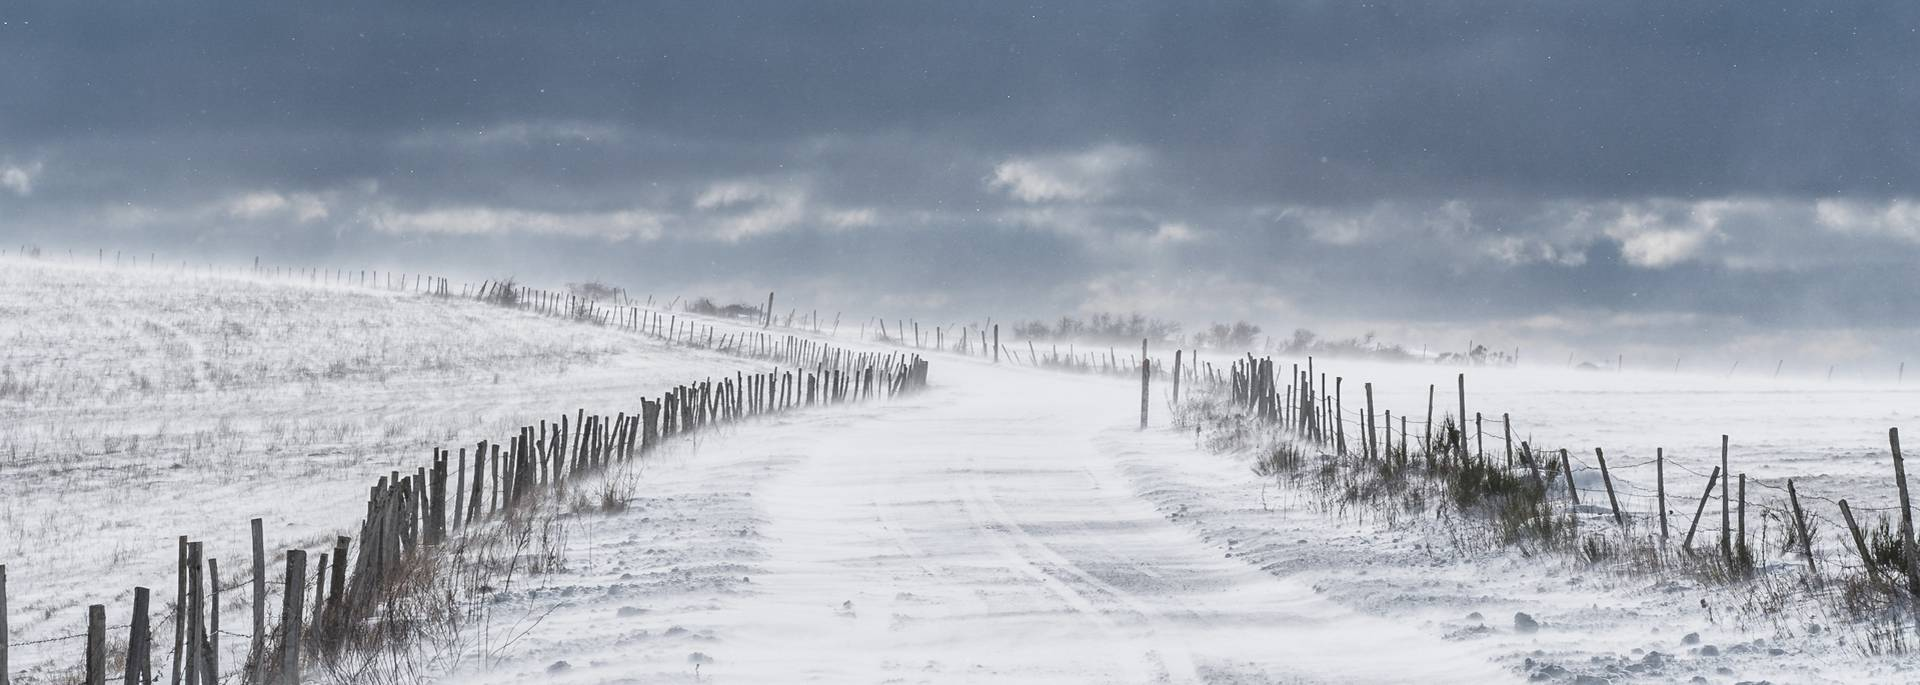 Aubrac plateau under the snow